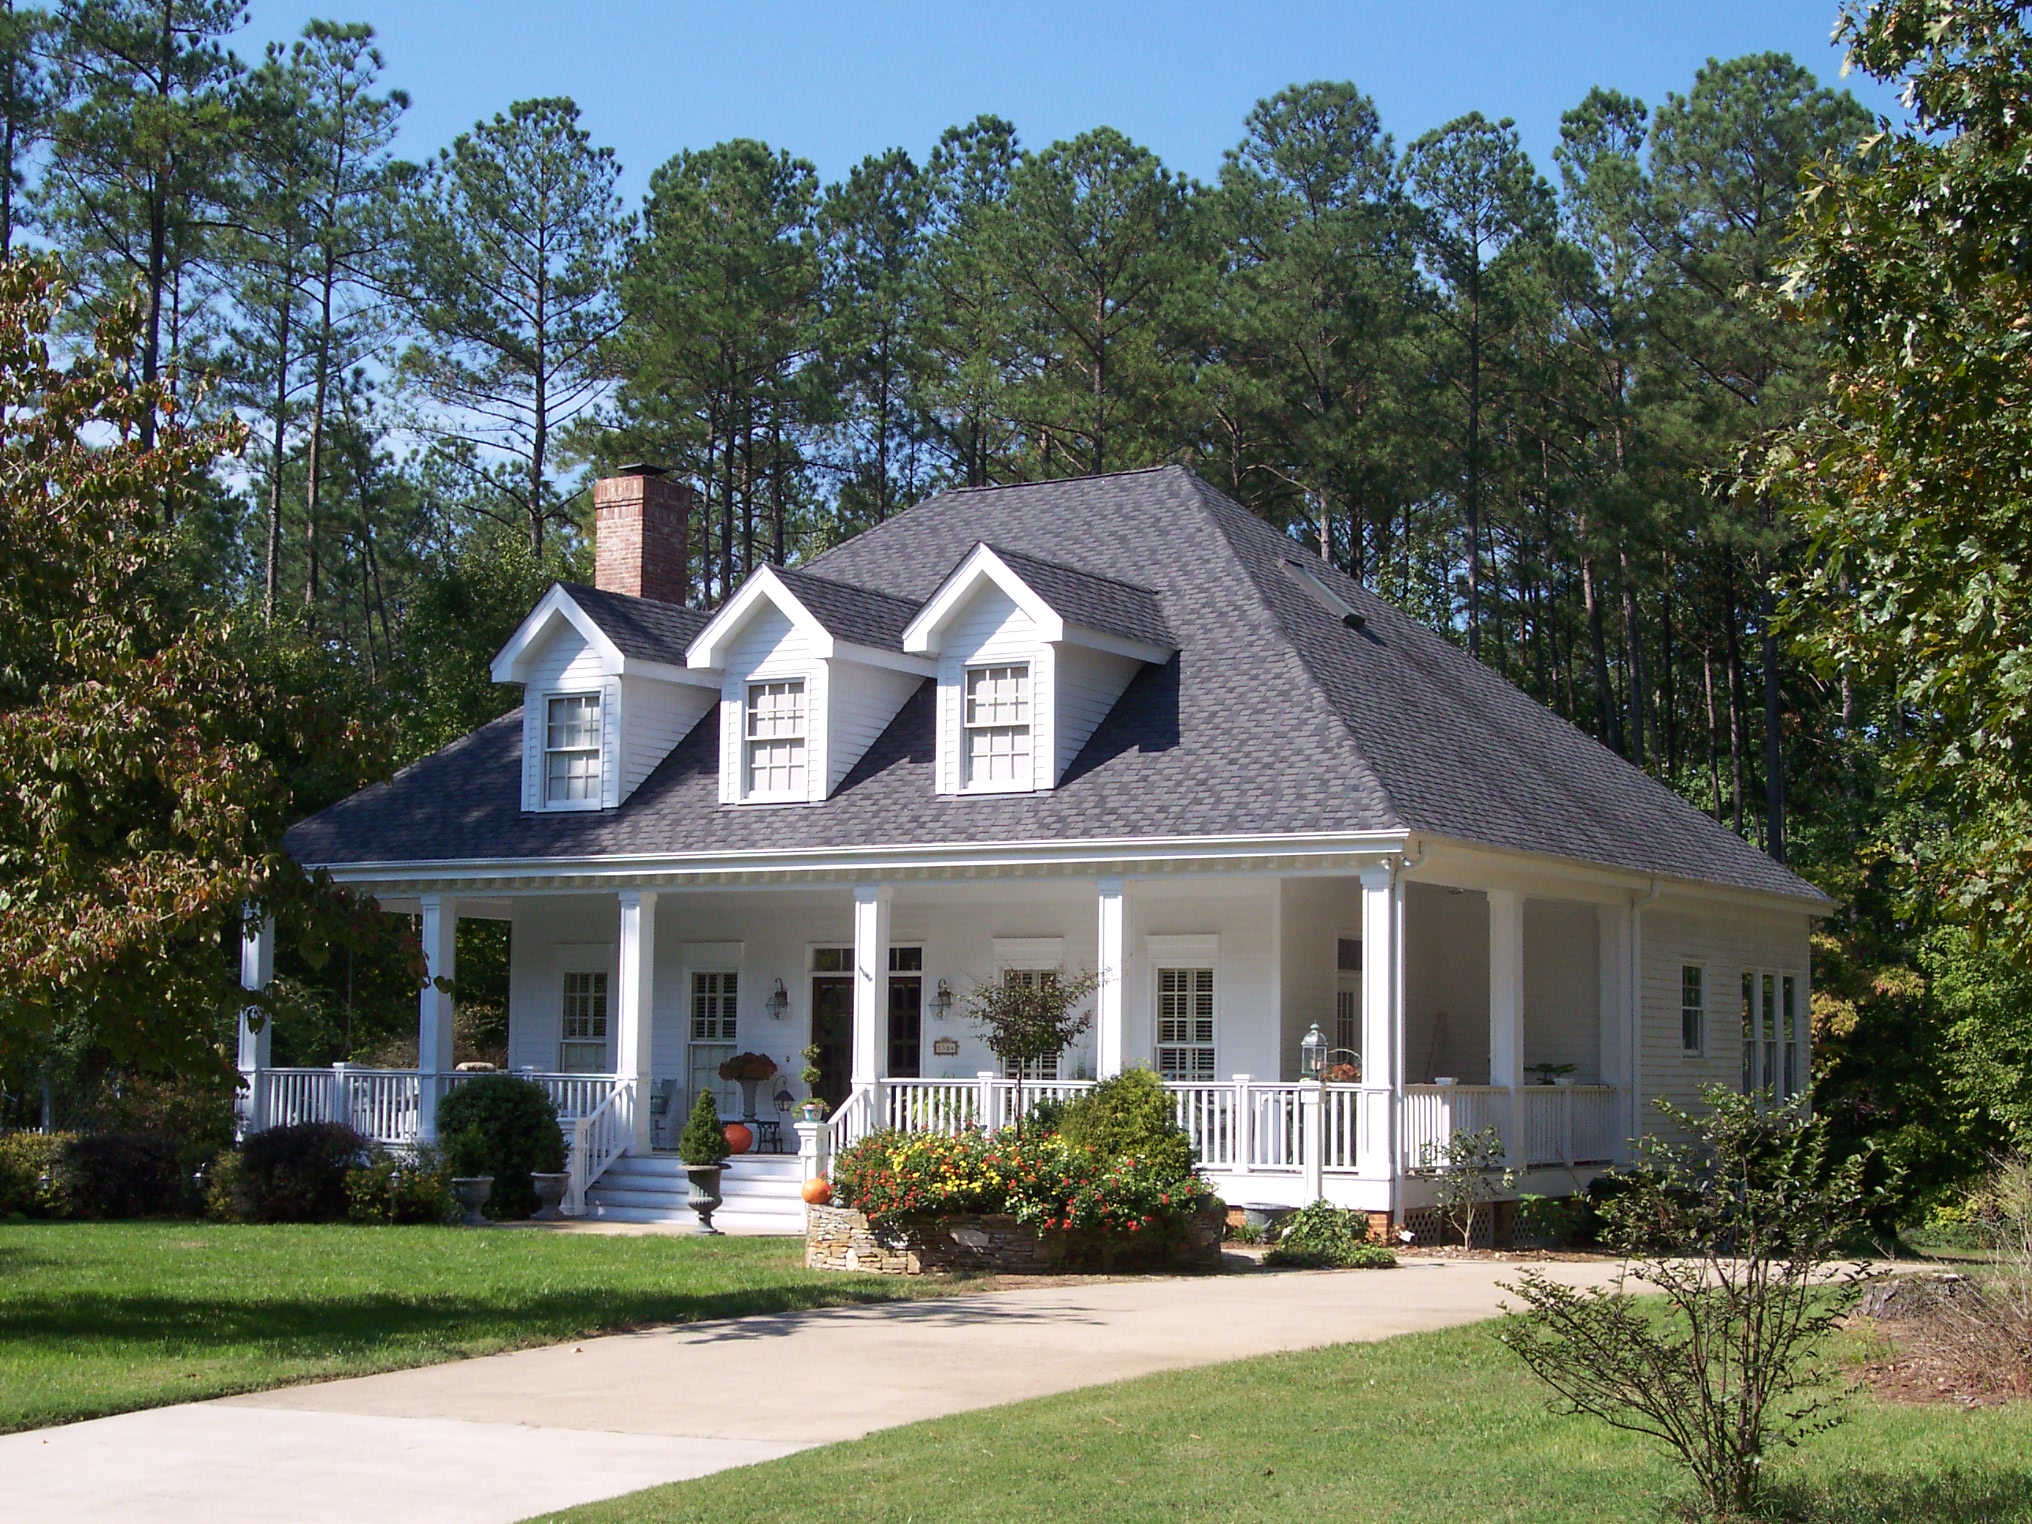 Adorable southern home plan 5669tr 1st floor master for Southern home plans designs